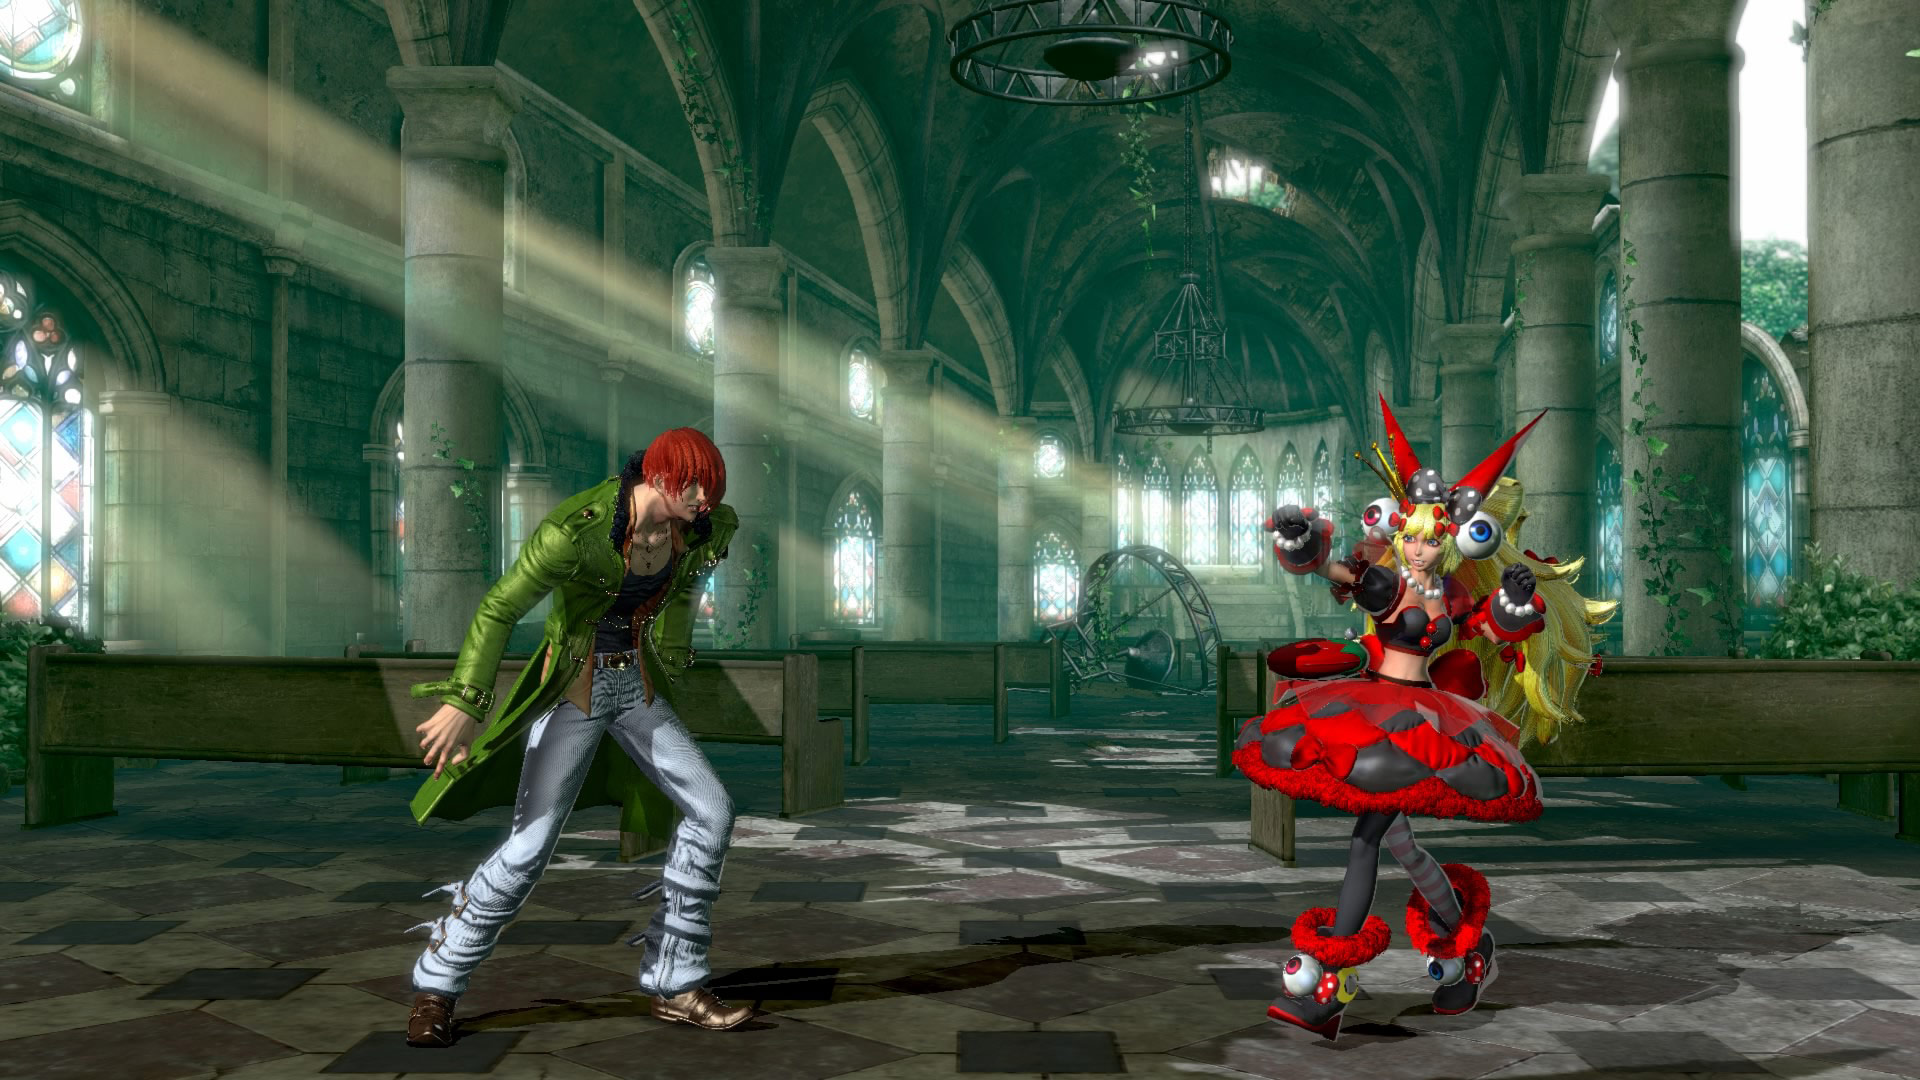 King of Fighters 14 1.10 graphics update 30 out of 60 image gallery